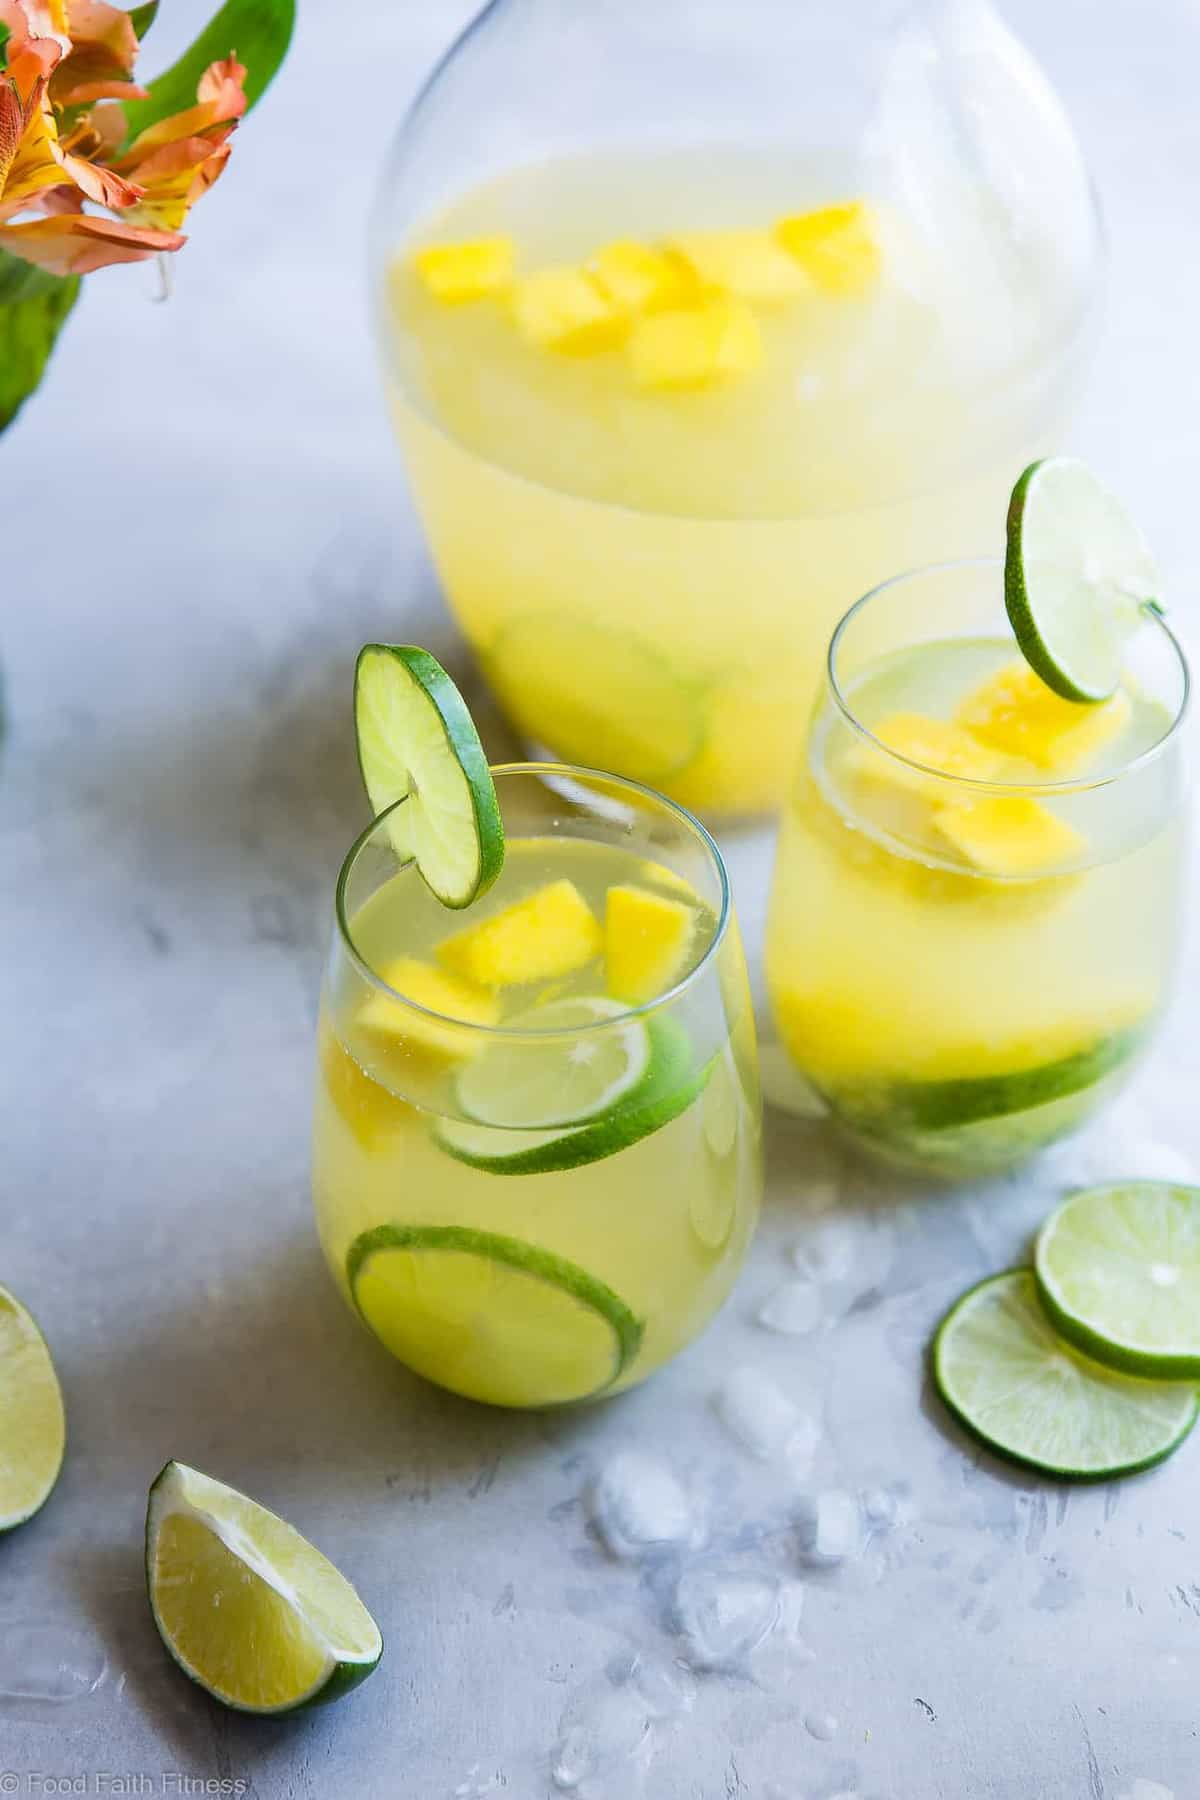 Tropical White Moscato Sangria -This easy, island styleWhite Moscato Sangria recipe is a SUPER easy cocktail, perfect for Summer parties! Made with better for you ingredients and SO tasty! | #Foodfaithfitness | #Sangria #Glutenfree #Healthy #DairyFree #Cocktail